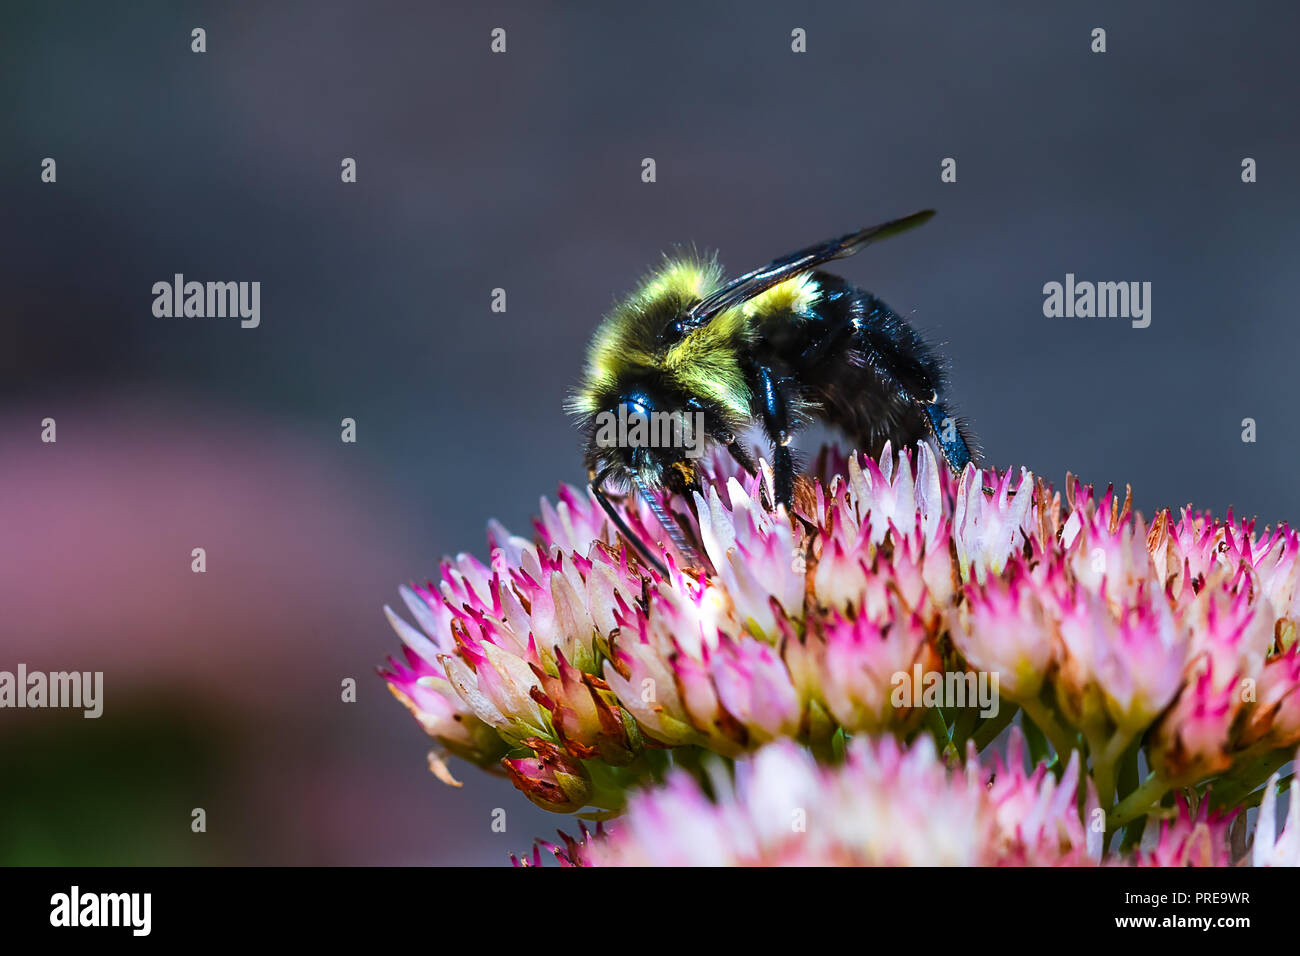 Black and Yellow Bumble Bee collecting Pollen on a flower.  Macro distance with high clarity on the insect. - Stock Image